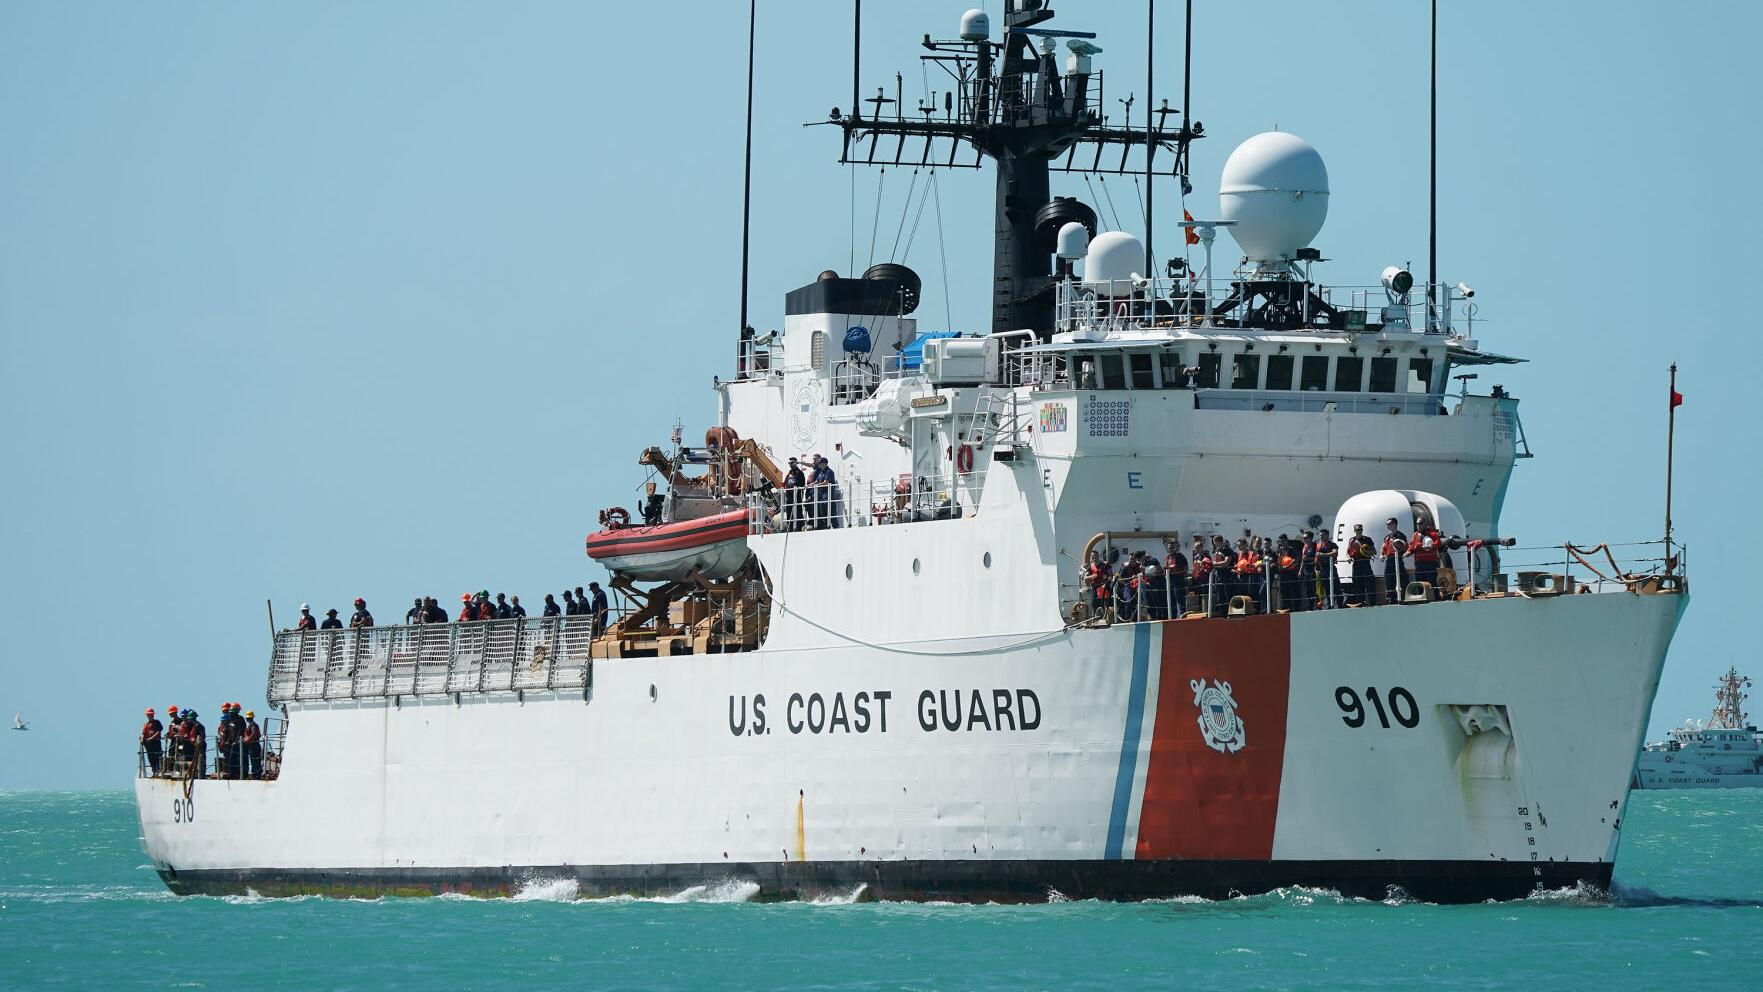 Thetis returns to Key West after active mission